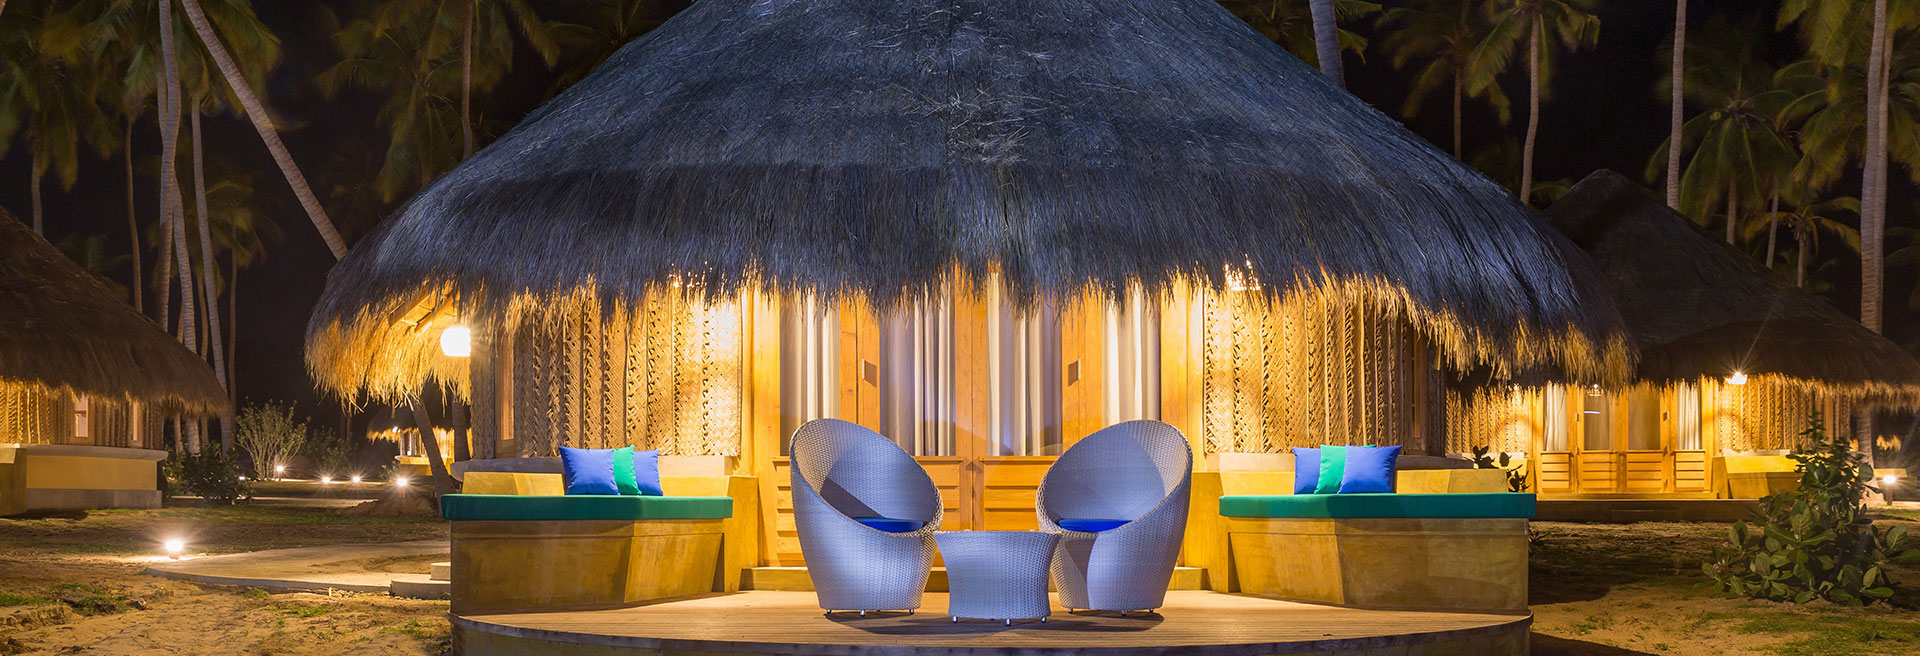 Night time view of the cabana